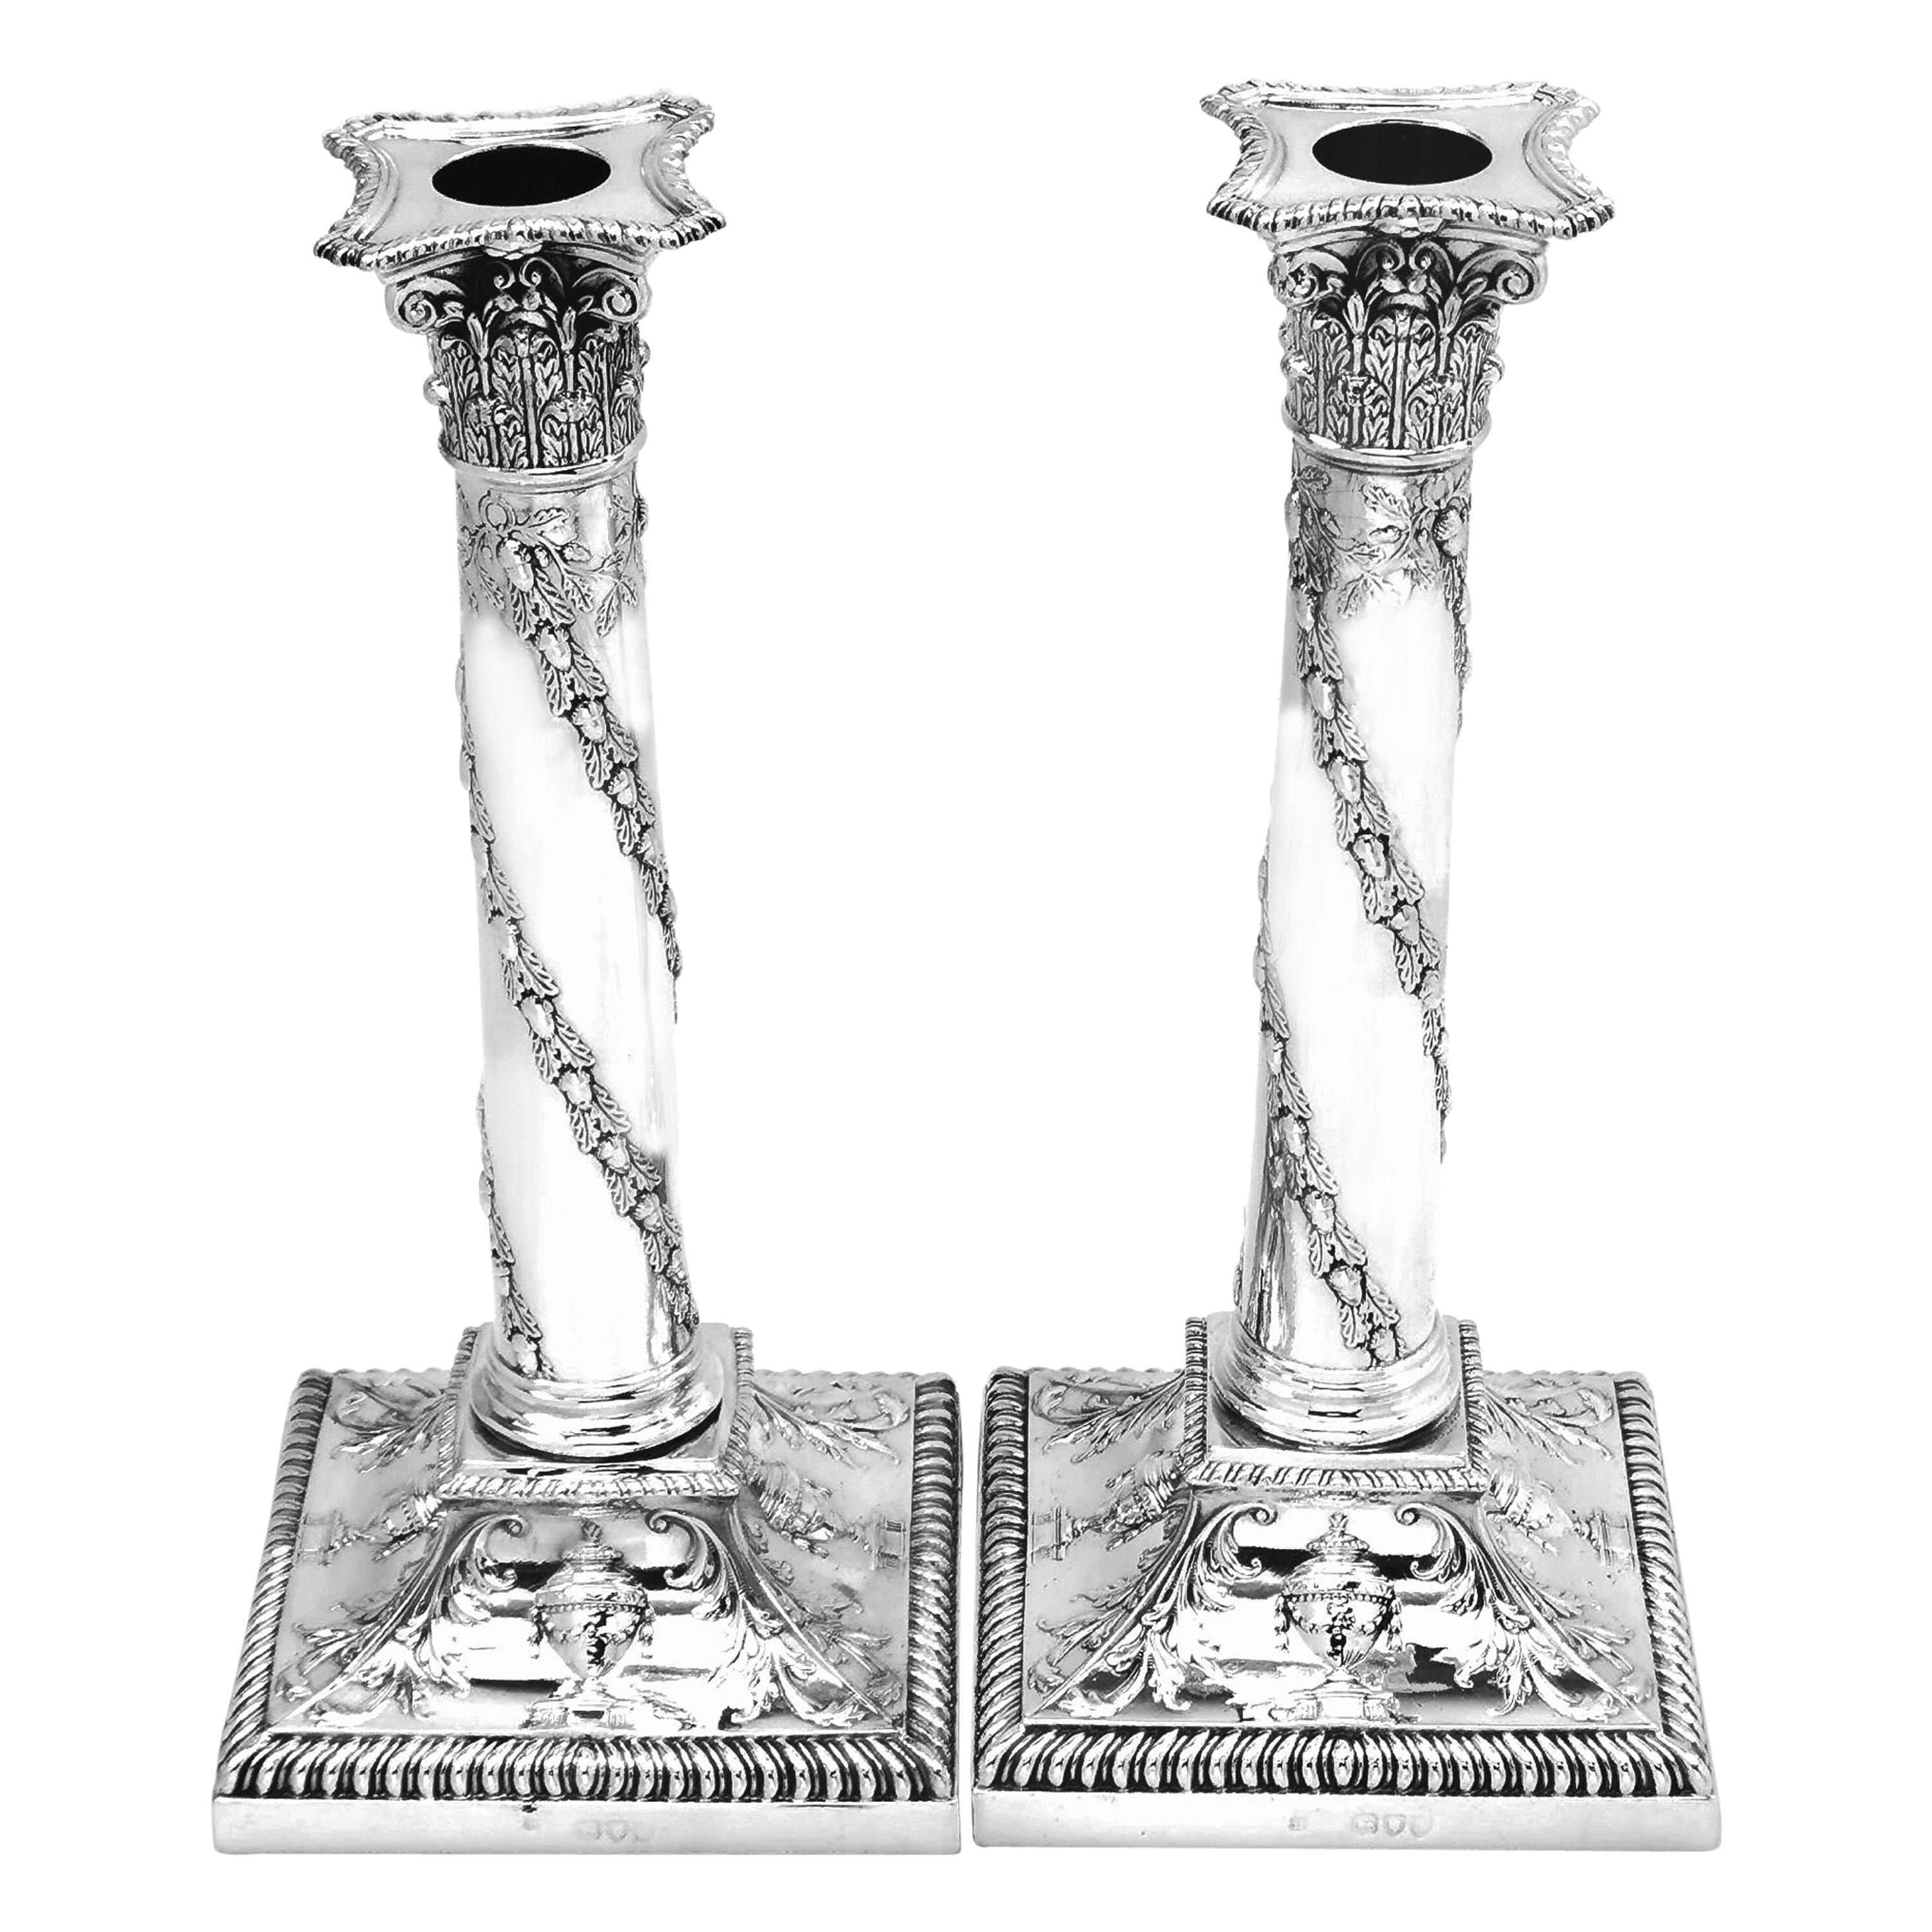 Pair of Antique Victorian Sterling Silver Candlesticks 1895